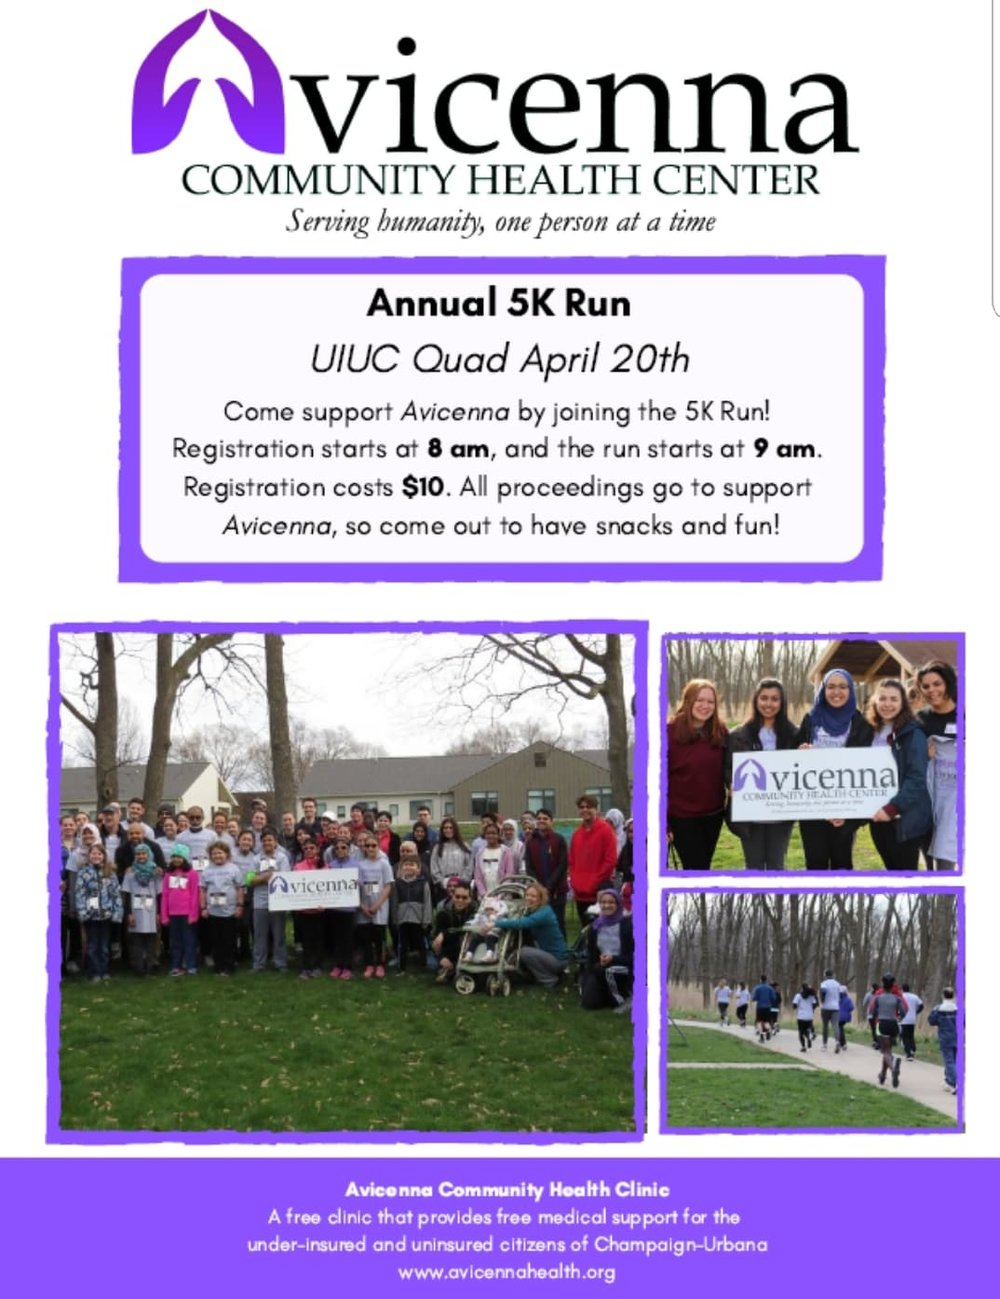 """Register Here - It's that time of the year!! Avicenna Community Healthcare Center will be hosting its Annual 2019 5K Run at the University of Illinois Quad on Saturday, April 20th! Registration will be at 8am and the race will start at 9am. Come join us as we will fundraise and promote awareness for the clinic.Refreshments will be provided and participants may choose to either walk or run the 5K. In addition, there will be an associated health and wellness fair.Event date: April 20th, 2018Event location: UIUC Illini Union Main Quad1401 West Green StreetUrbana, Il 61801Time: Check in begins at 8:00 am and race starts at 9:00am sharpTransportation: There are several options for free parking on the weekends near the Illini Union. Lot D6 on 407 S Goodwin Ave, Urbana, IL 61801Lot B7 on Nuclear Radiations Laboratory, Urbana, IL 61801Lot C3 on 601 E John St, Champaign, IL 61820Lot C7 on 812 S 5th St, Champaign, IL 61820,St. Mathew Street has free metered parking on the weekendsMain Library Parking Lot is free on the weekends at 1408 W Gregory Dr. Urbana, Il 61801All of these locations are within a 10 min walking distance to the union!Registration is 10$. Please fill out the Registration Form below:https://docs.google.com/forms/d/e/1FAIpQLSe_19gFARflMkq58fy4yEh7_xfVNyO3yMXonc98743WCdQ_WQ/viewformWe accept venmo, paypal, cash.T-shirts are first come first served! We will also have a light bagel breakfast provided by Panera and Einstein's, as well as fun games and activities, prizes, and a Health Fair.Interested in just donating? You can easily Venmo the clinic @Avicenna_Health and caption it as """"Donation"""".Spread the word! Hope to see you there!"""